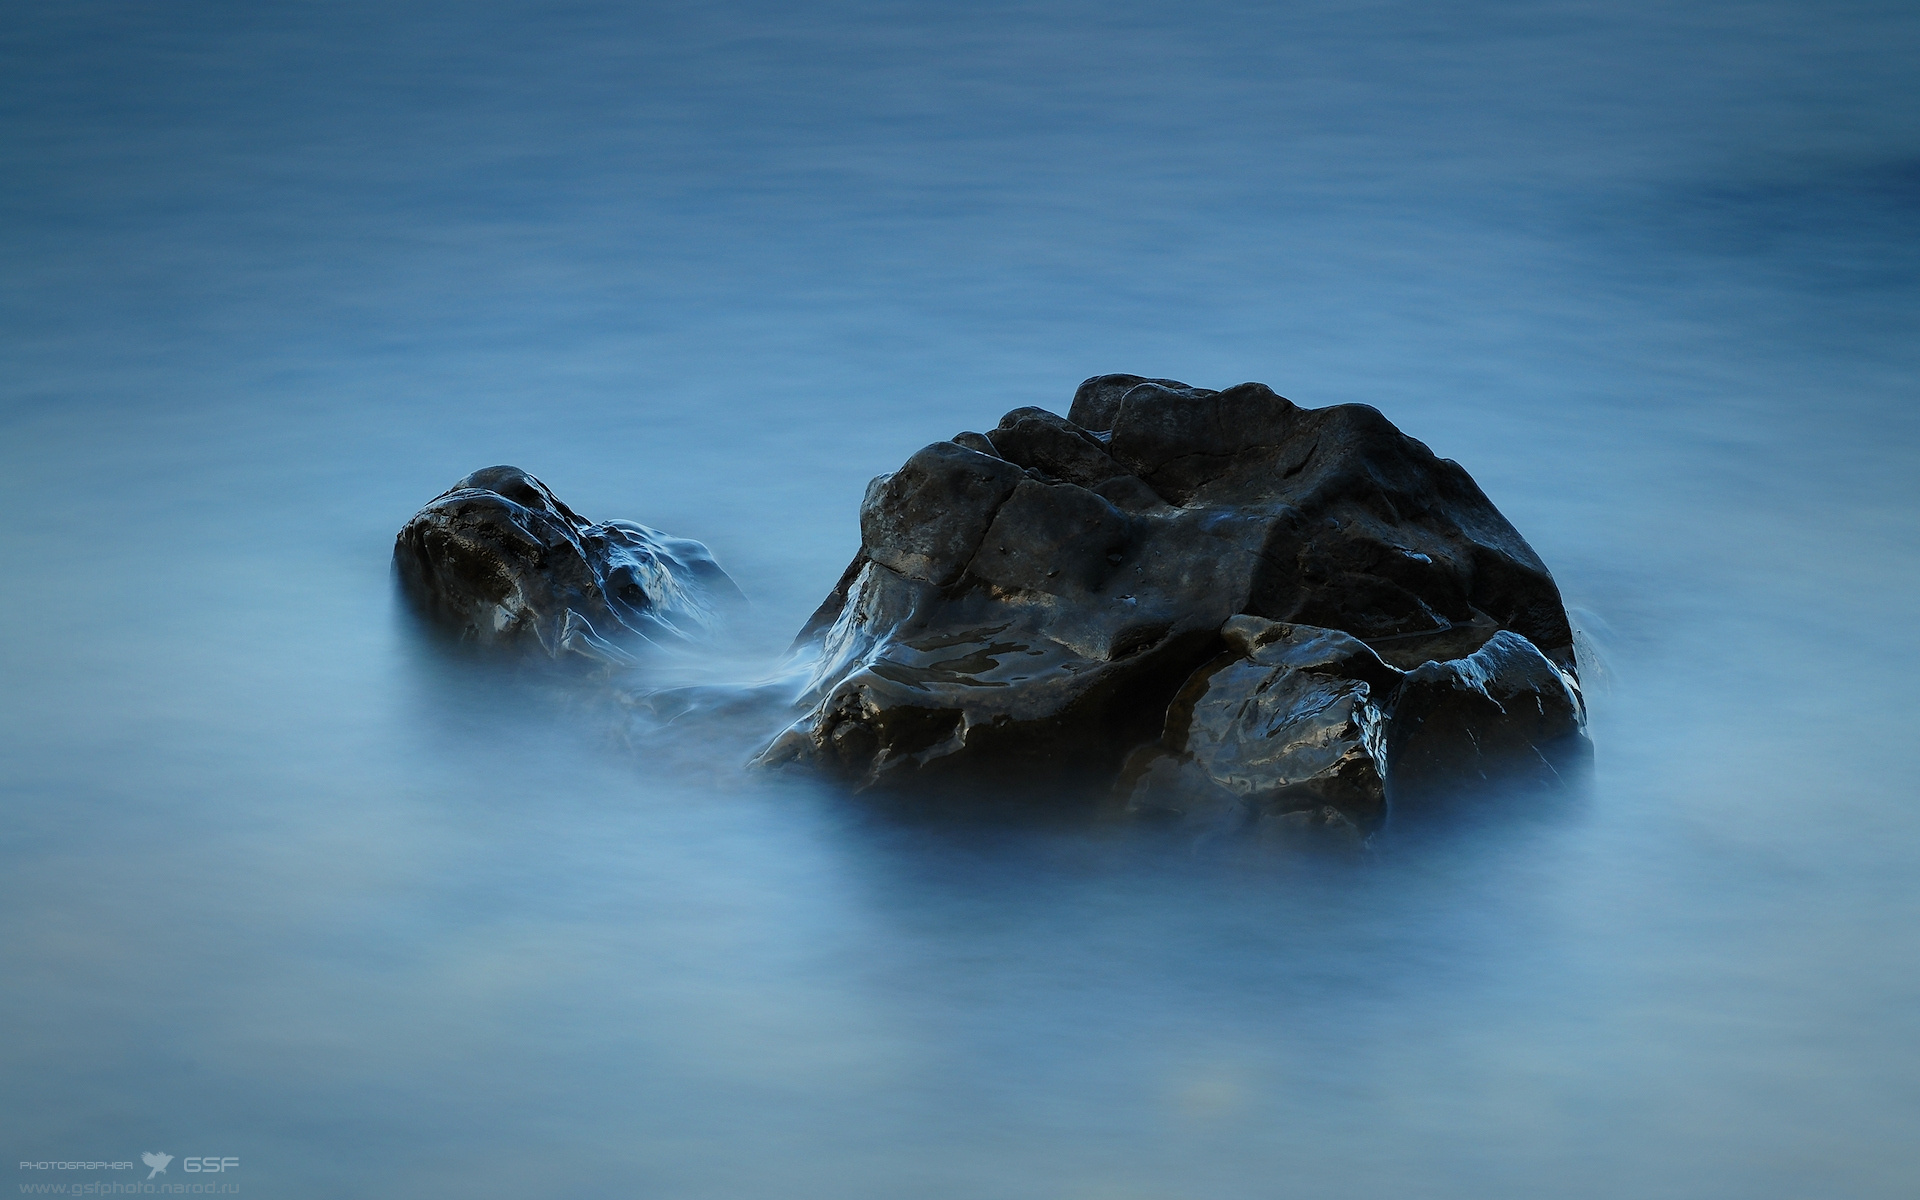 General 1920x1200 nature wet rocks water blue